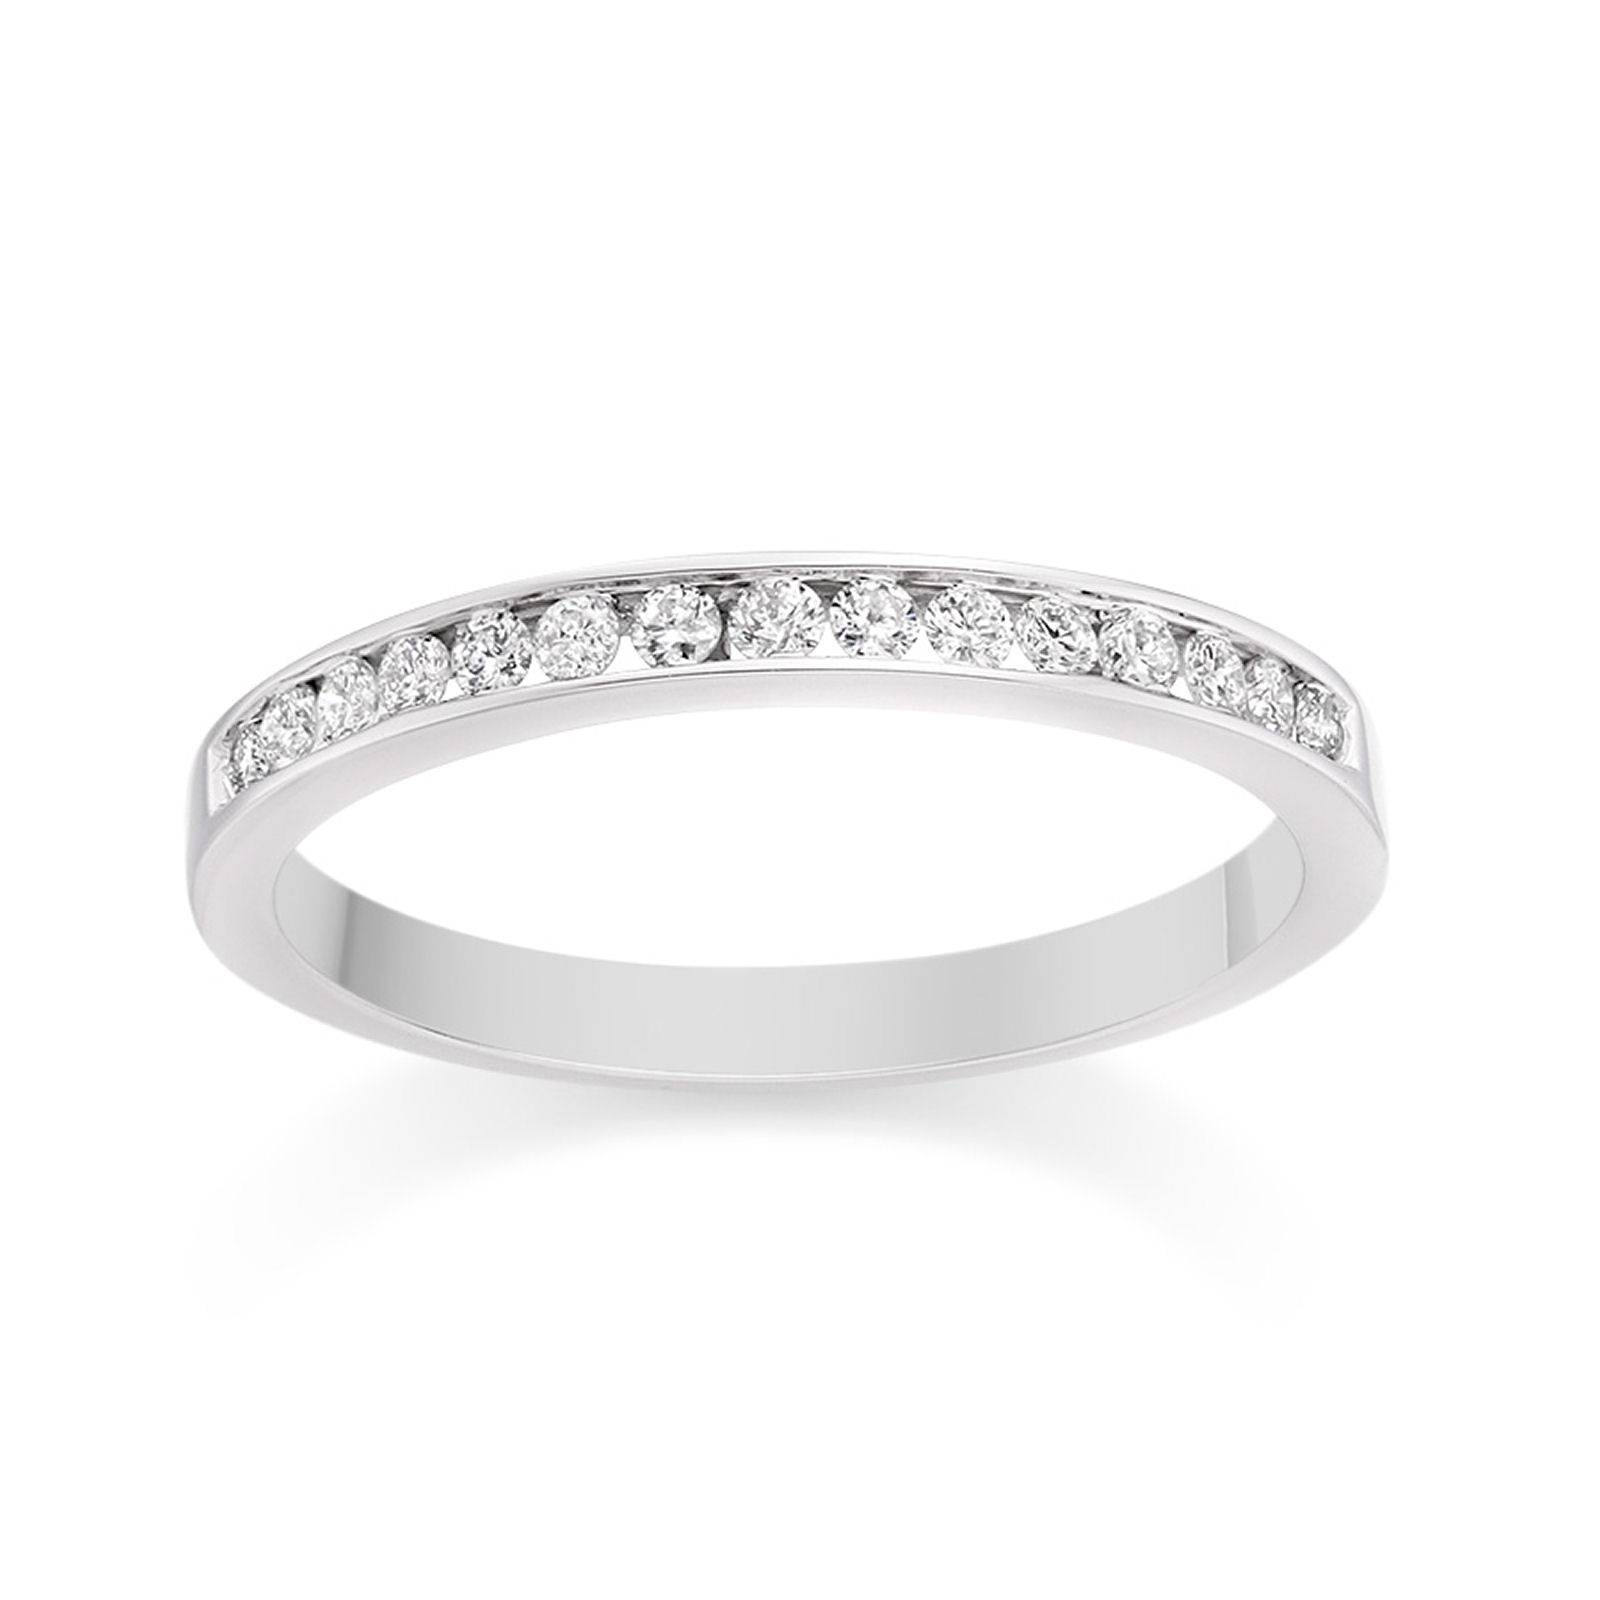 Channel Set Diamond Wedding Ring In Platinum Wedding Dress From Regarding Current Platinum Wedding Band With Diamonds (Gallery 1 of 15)